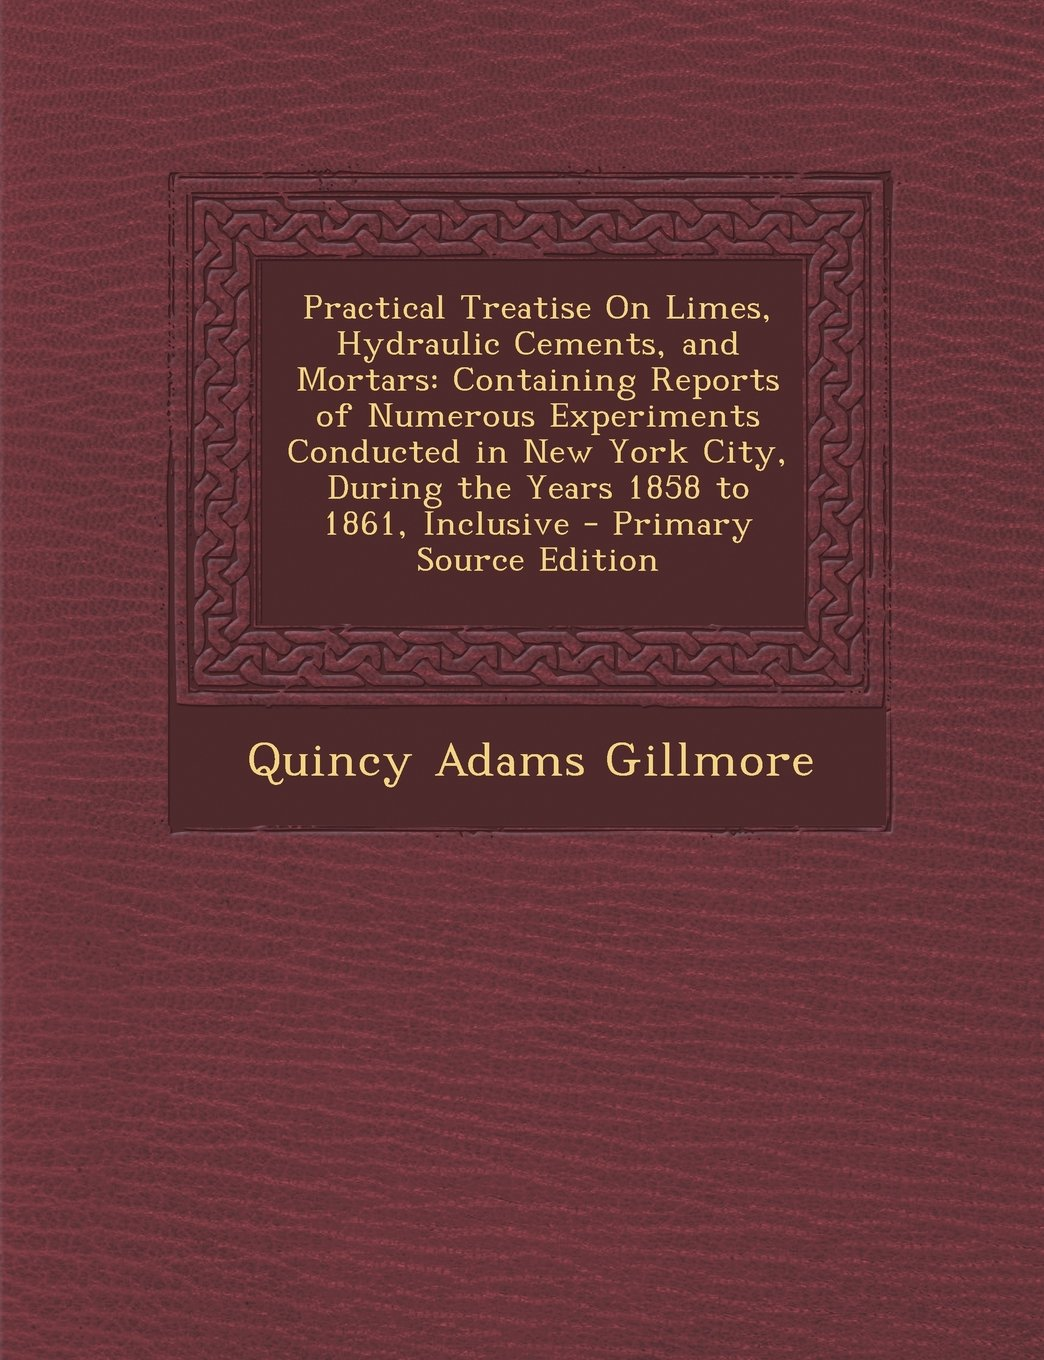 Practical Treatise On Limes, Hydraulic Cements, and Mortars: Containing Reports of Numerous Experiments Conducted in New York City, During the Years 1858 to 1861, Inclusive pdf epub